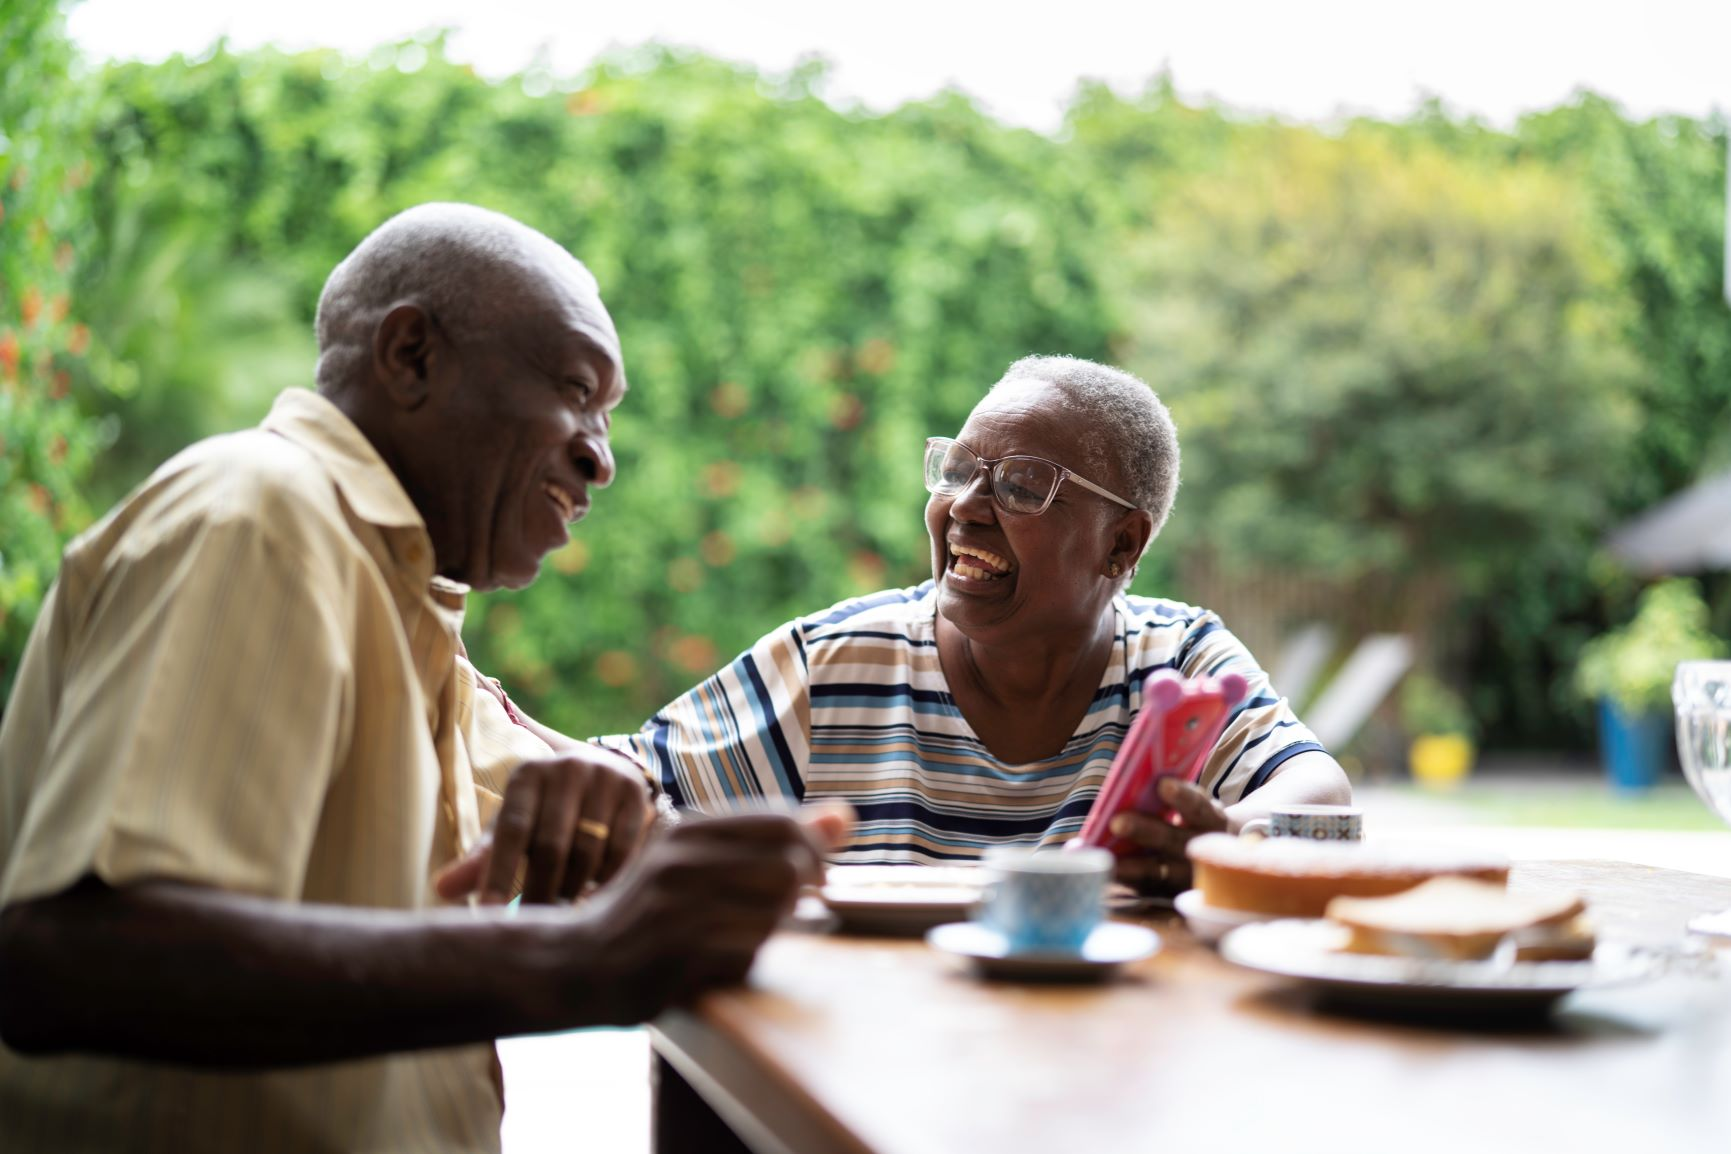 An older man and woman laugh together while enjoying a meal